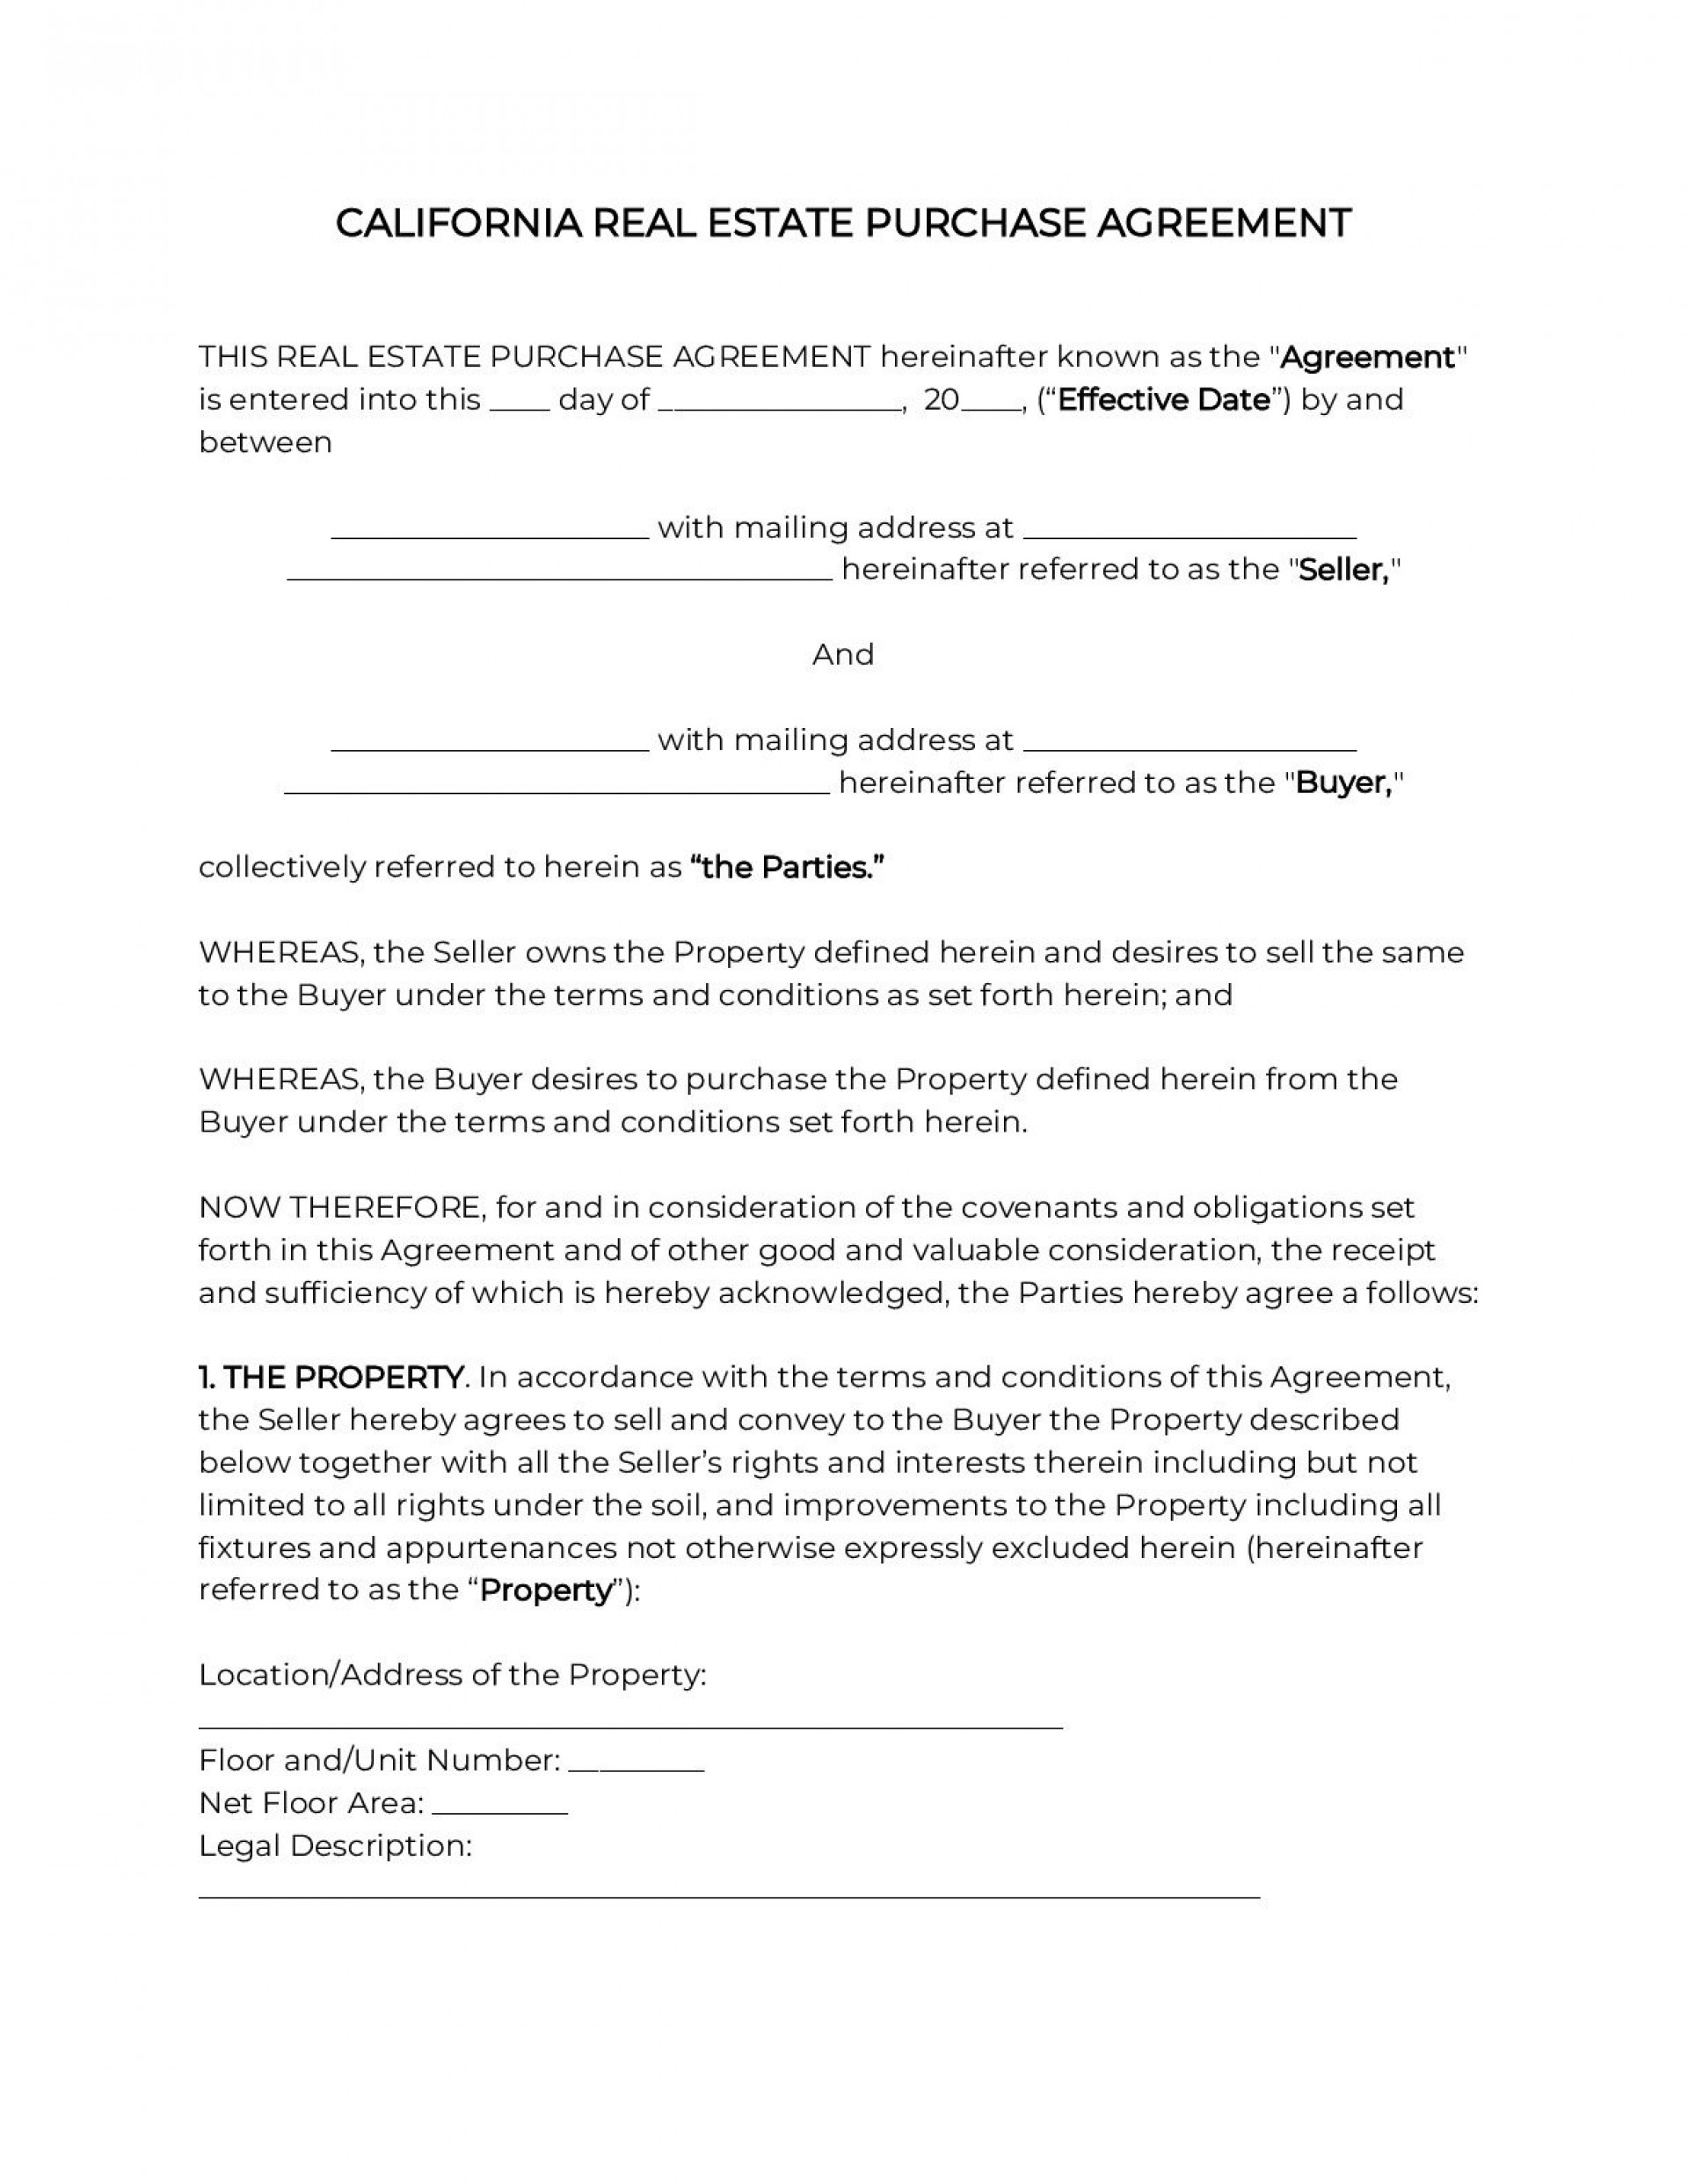 004 Excellent Real Estate Purchase Contract California Design  Commercial Agreement Pdf1920